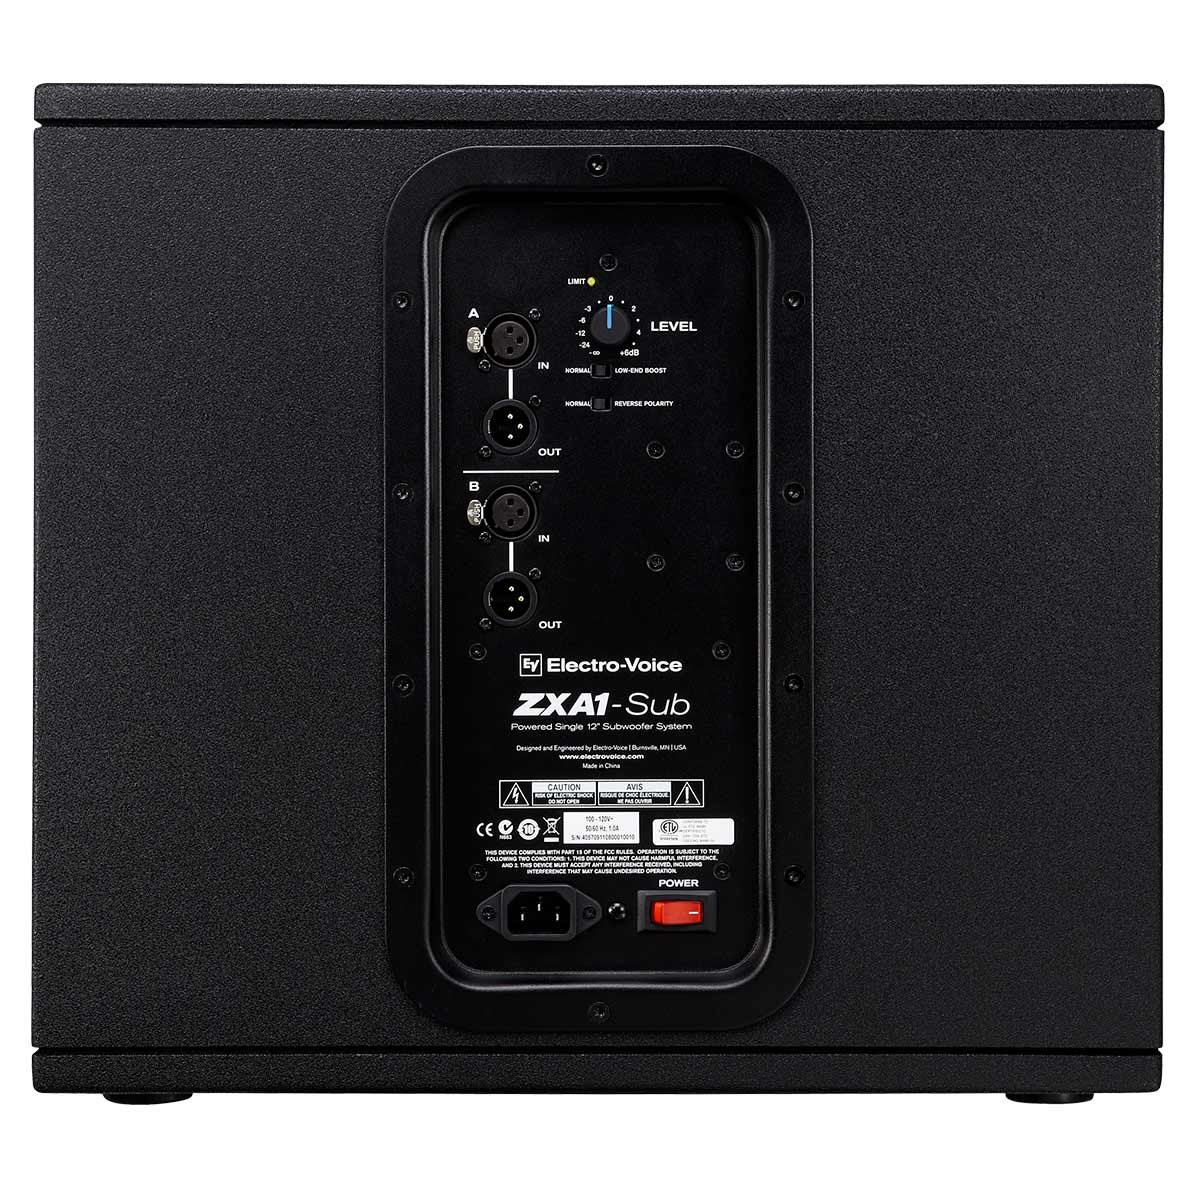 Subwoofer Ativo 800W Zx A1 SUB - Electro-Voice